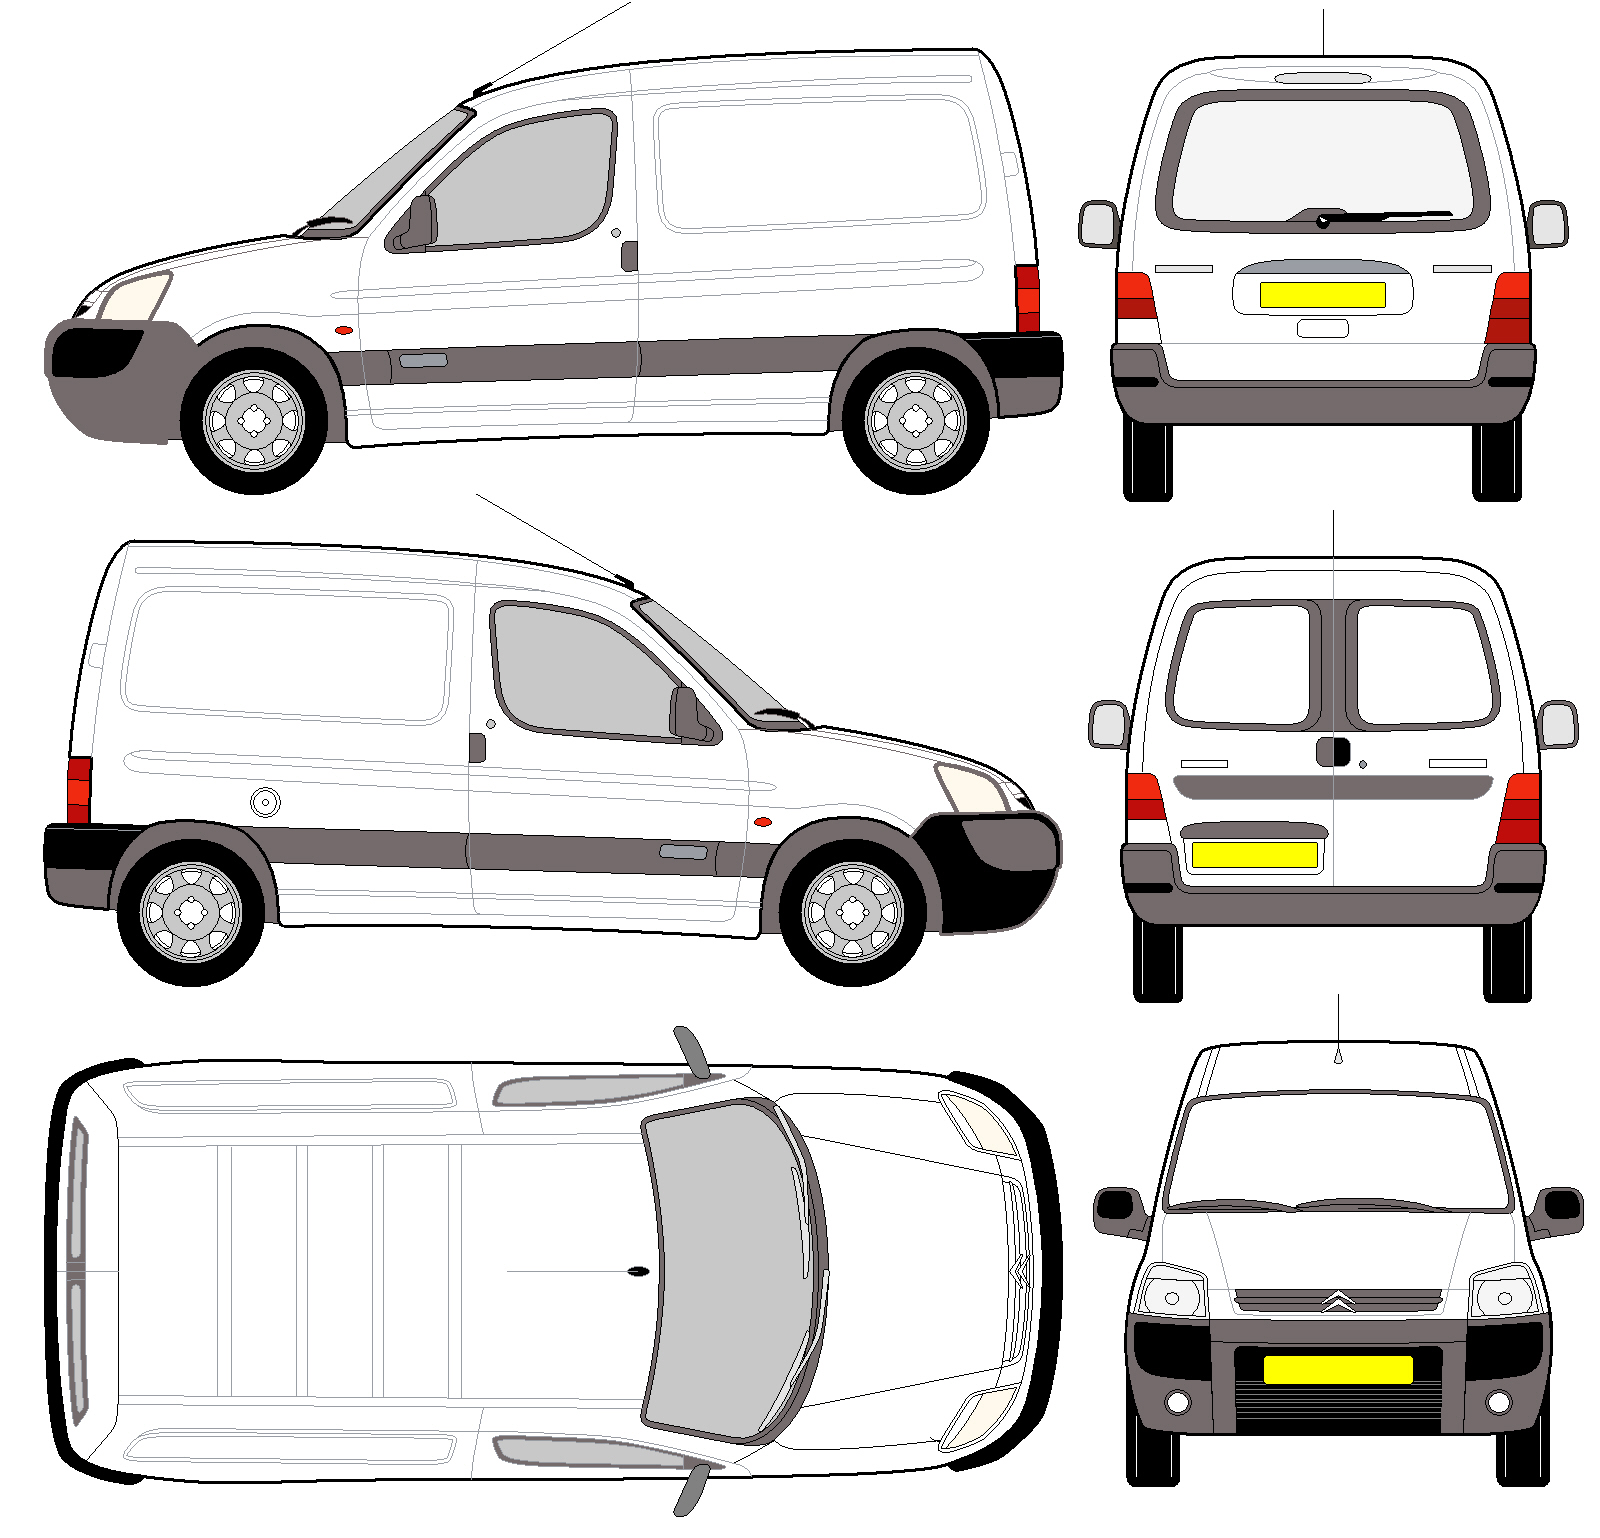 2004 Citroen Berlingo #10